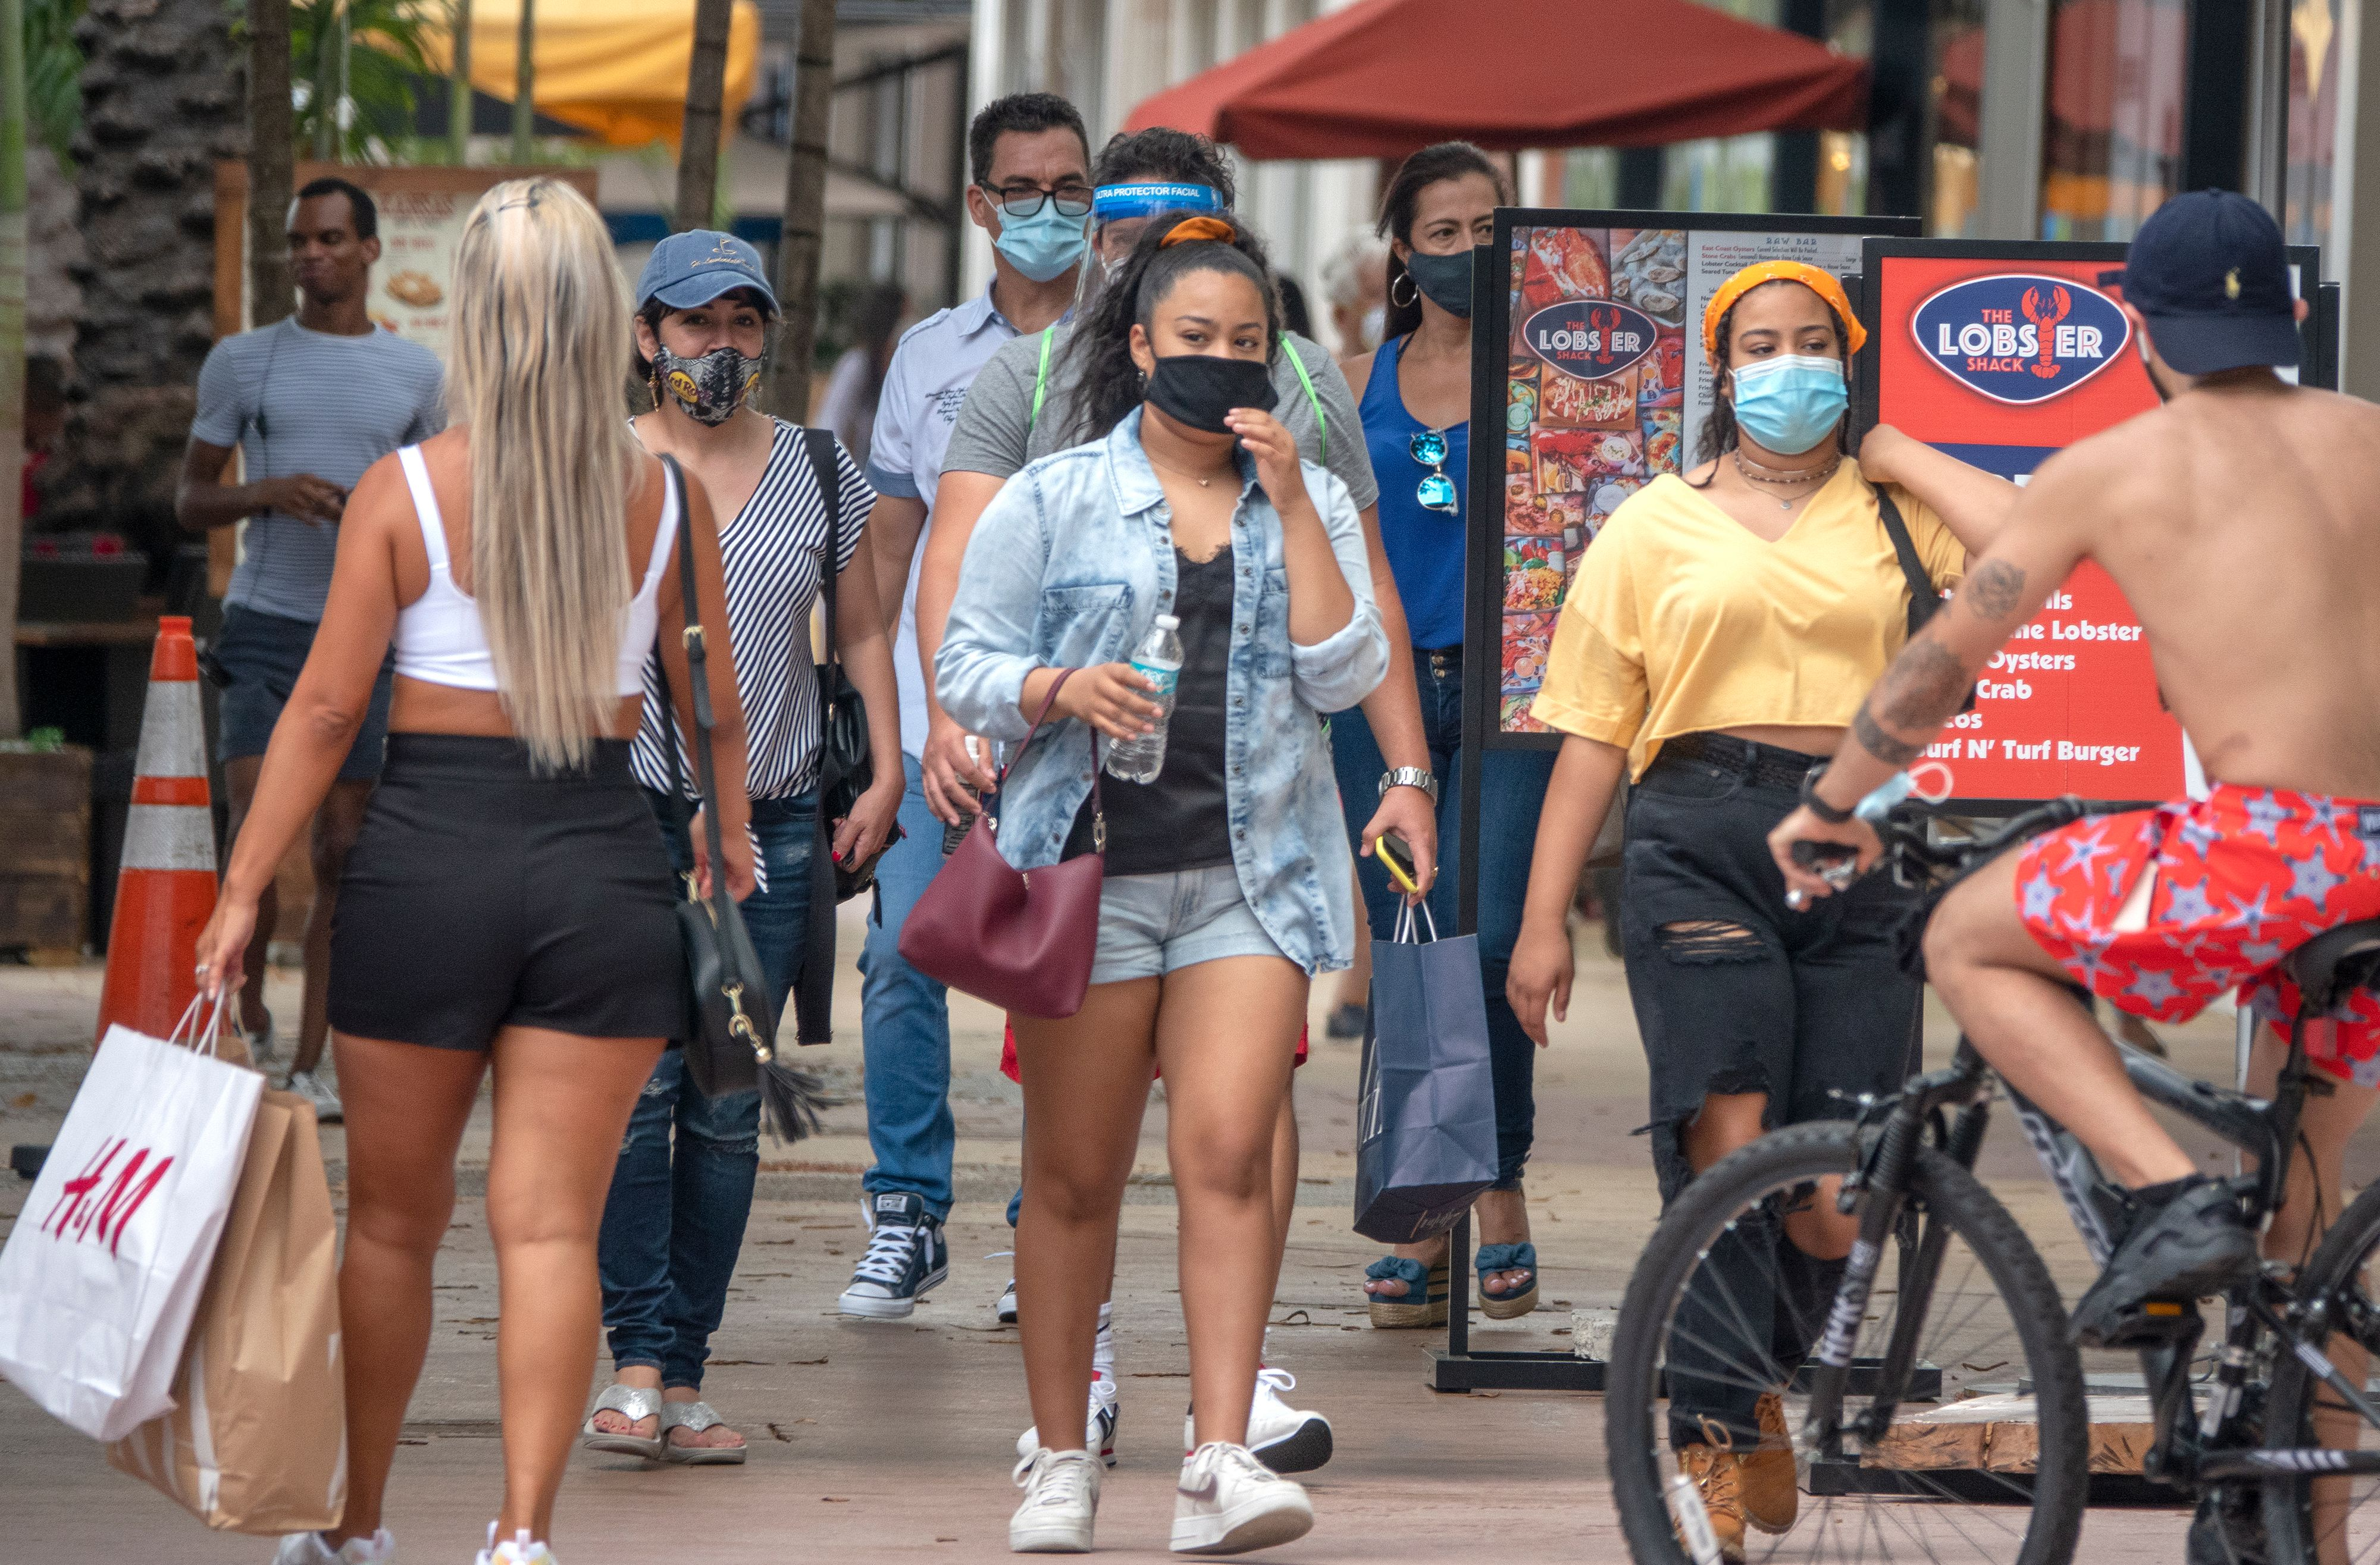 People walk through Lincoln Road section of Miami on July 12, as Florida has seen days of record breaking numbers of new coronavirus cases.